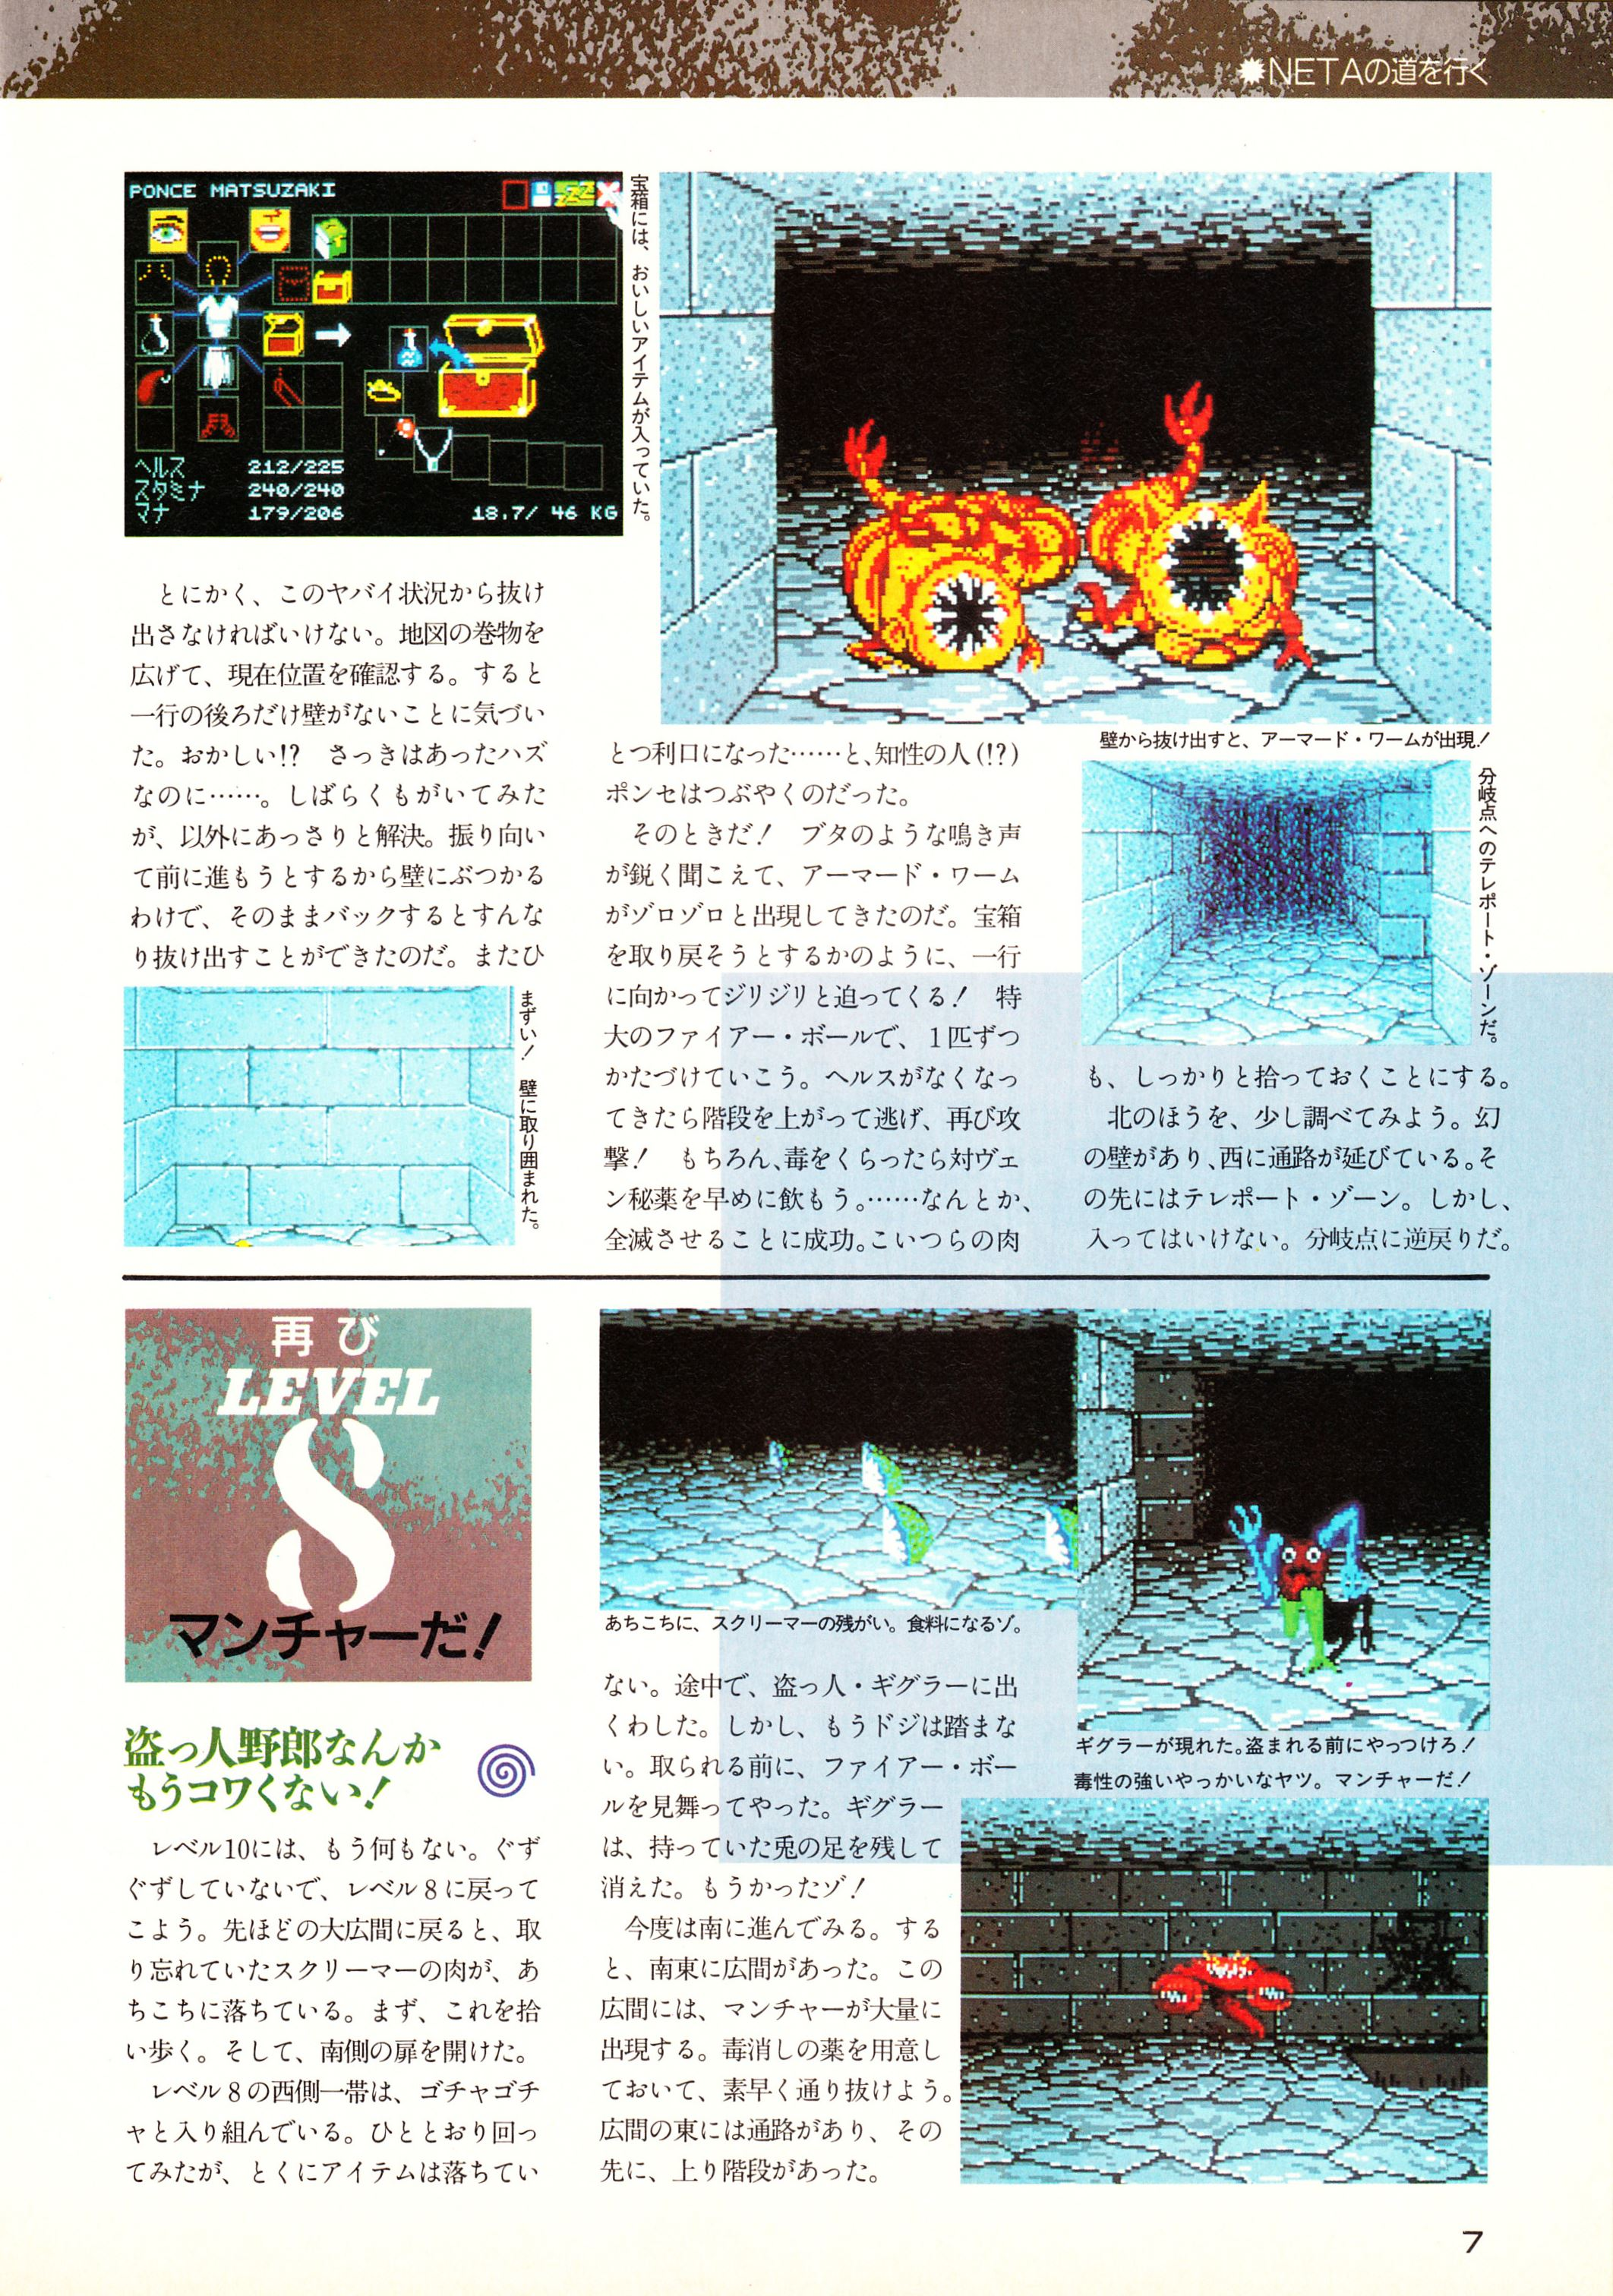 Supplement - Chaos Strikes Back Companion Guide II Guide published in Japanese magazine 'Popcom', Vol 9 No 3 01 March 1991, Page 9